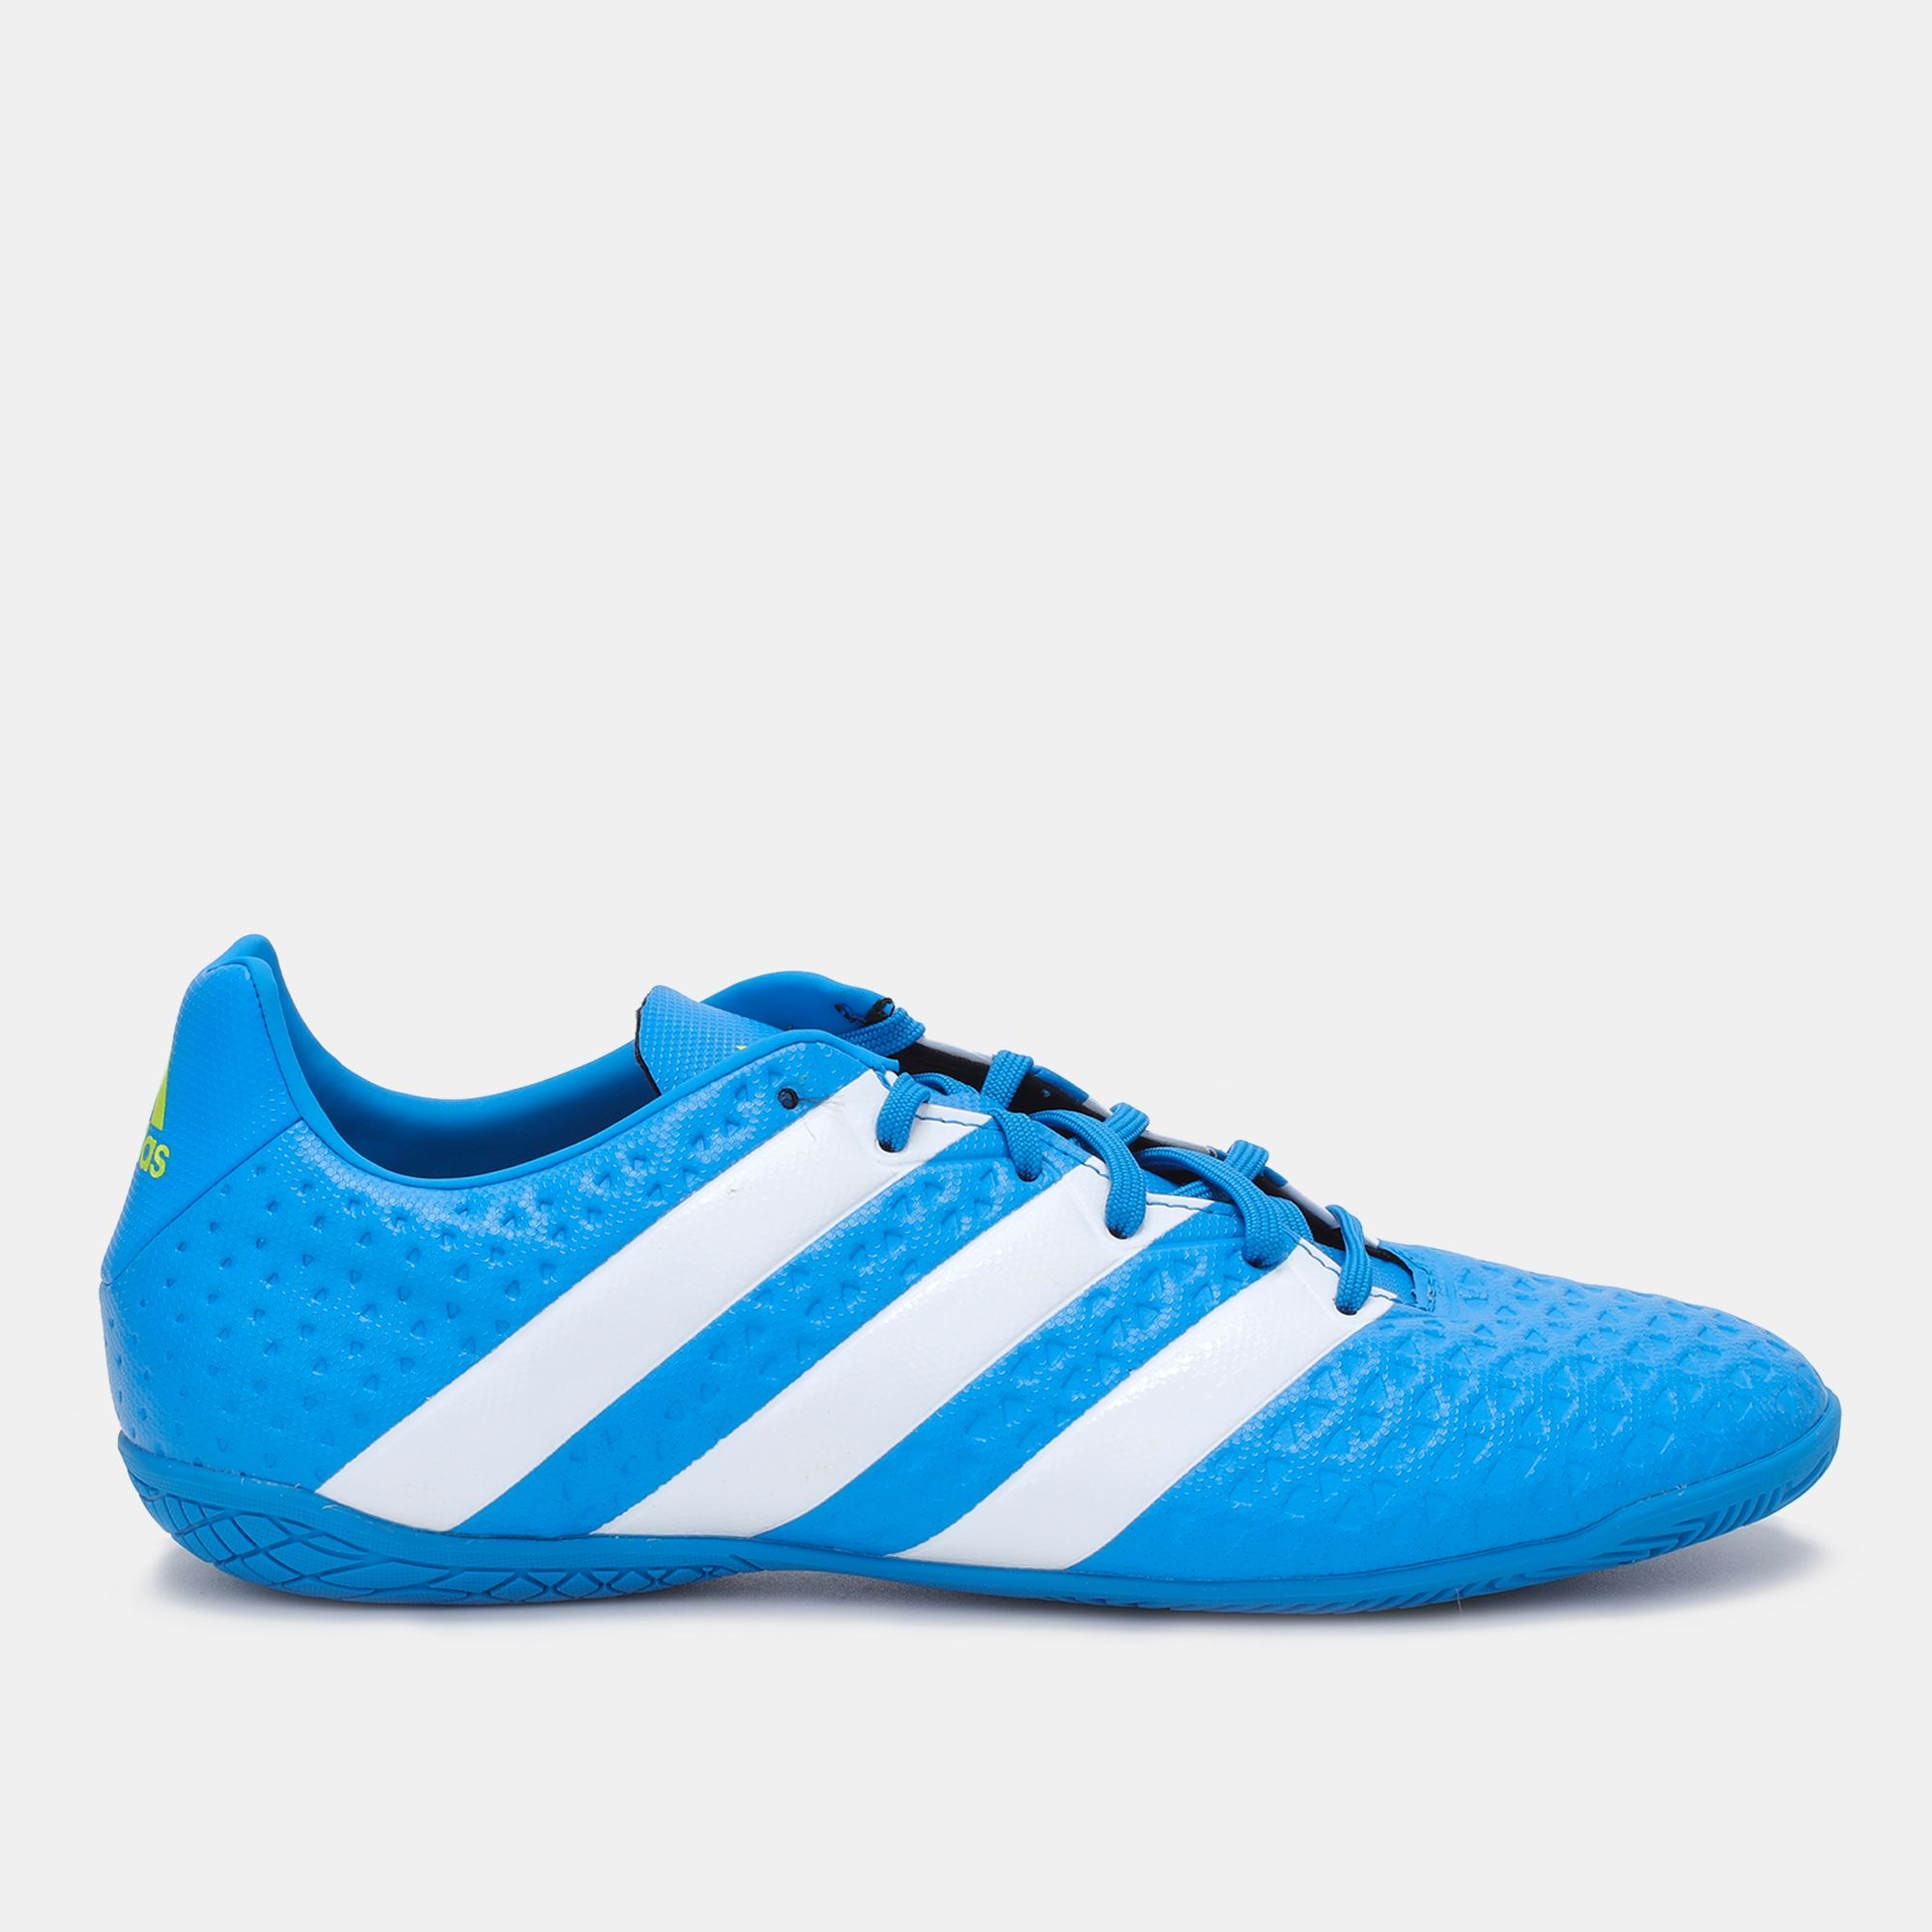 b78c61e5d354 Shop Blue adidas Ace 16.4 Indoor Football Shoe for Mens by adidas | SSS